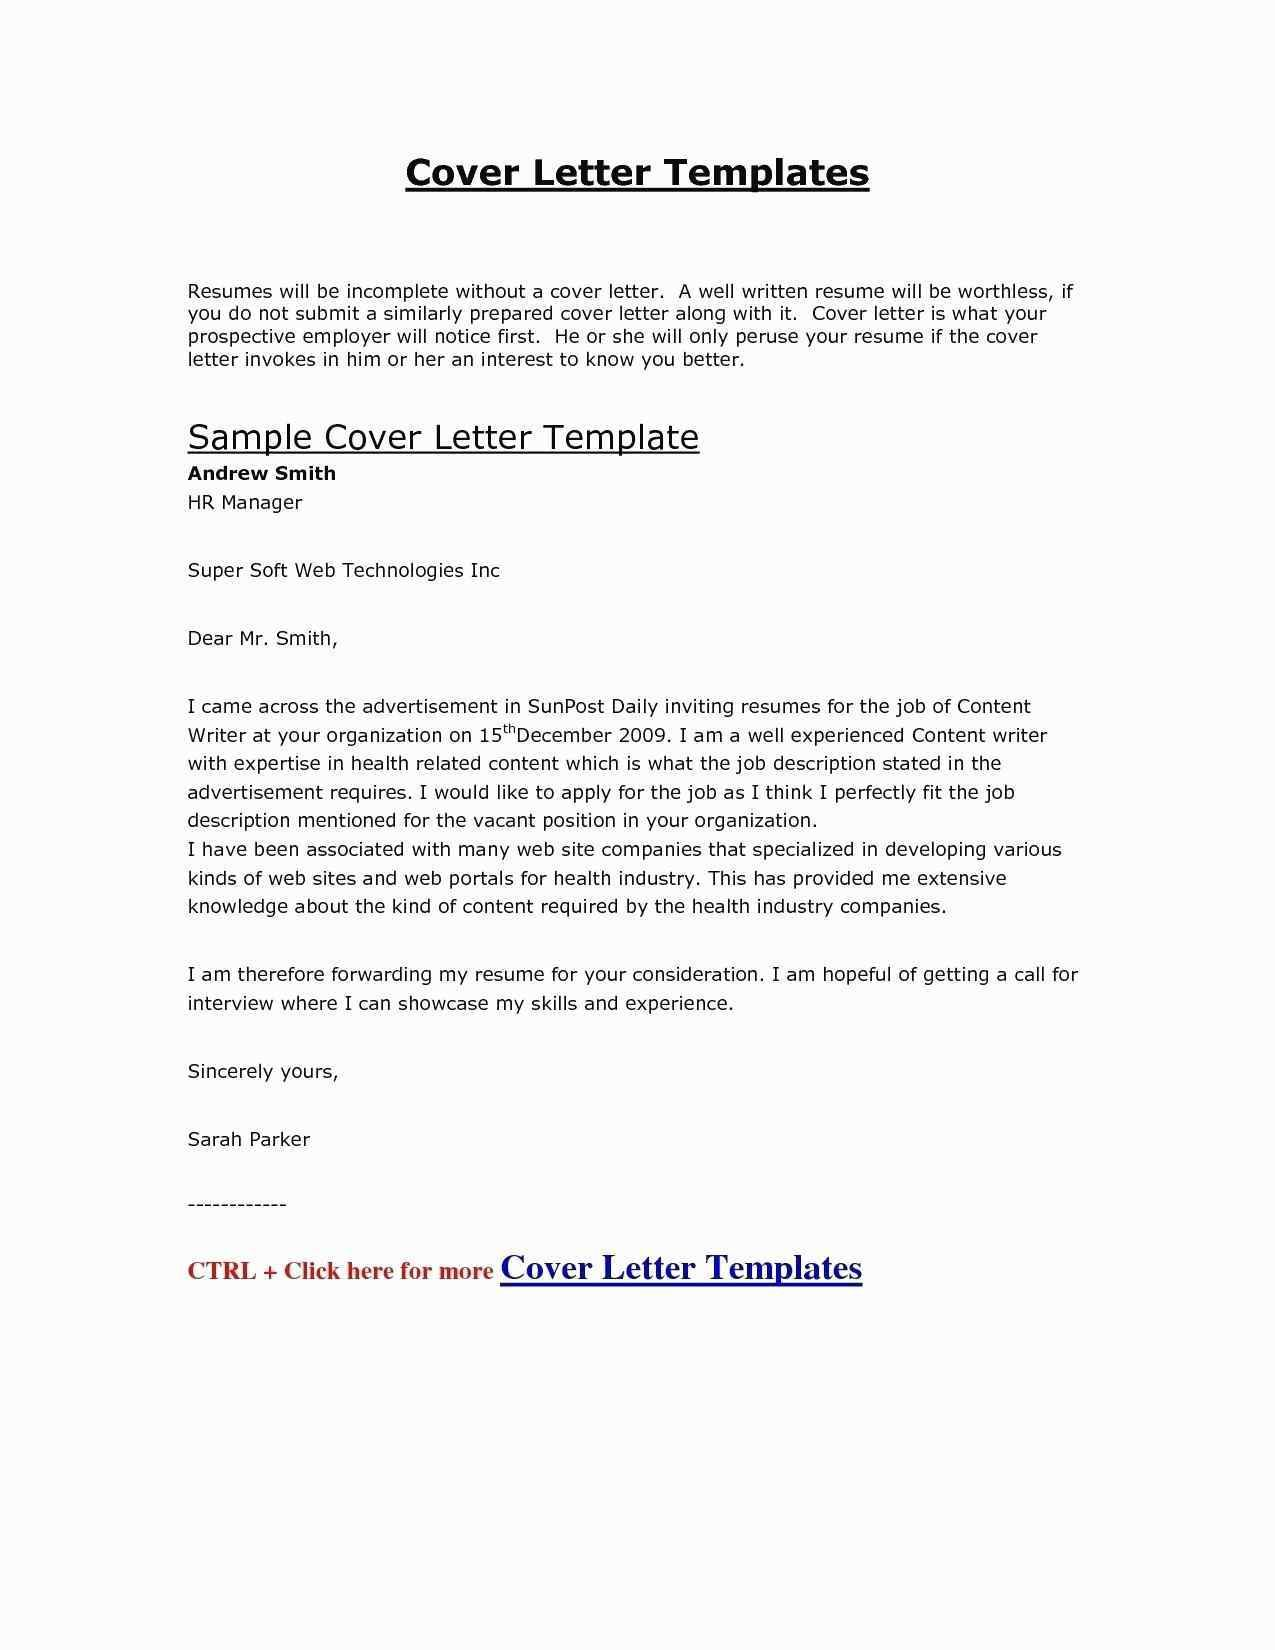 non profit cover letter samples non profit cover letter samples   non profit cover letter